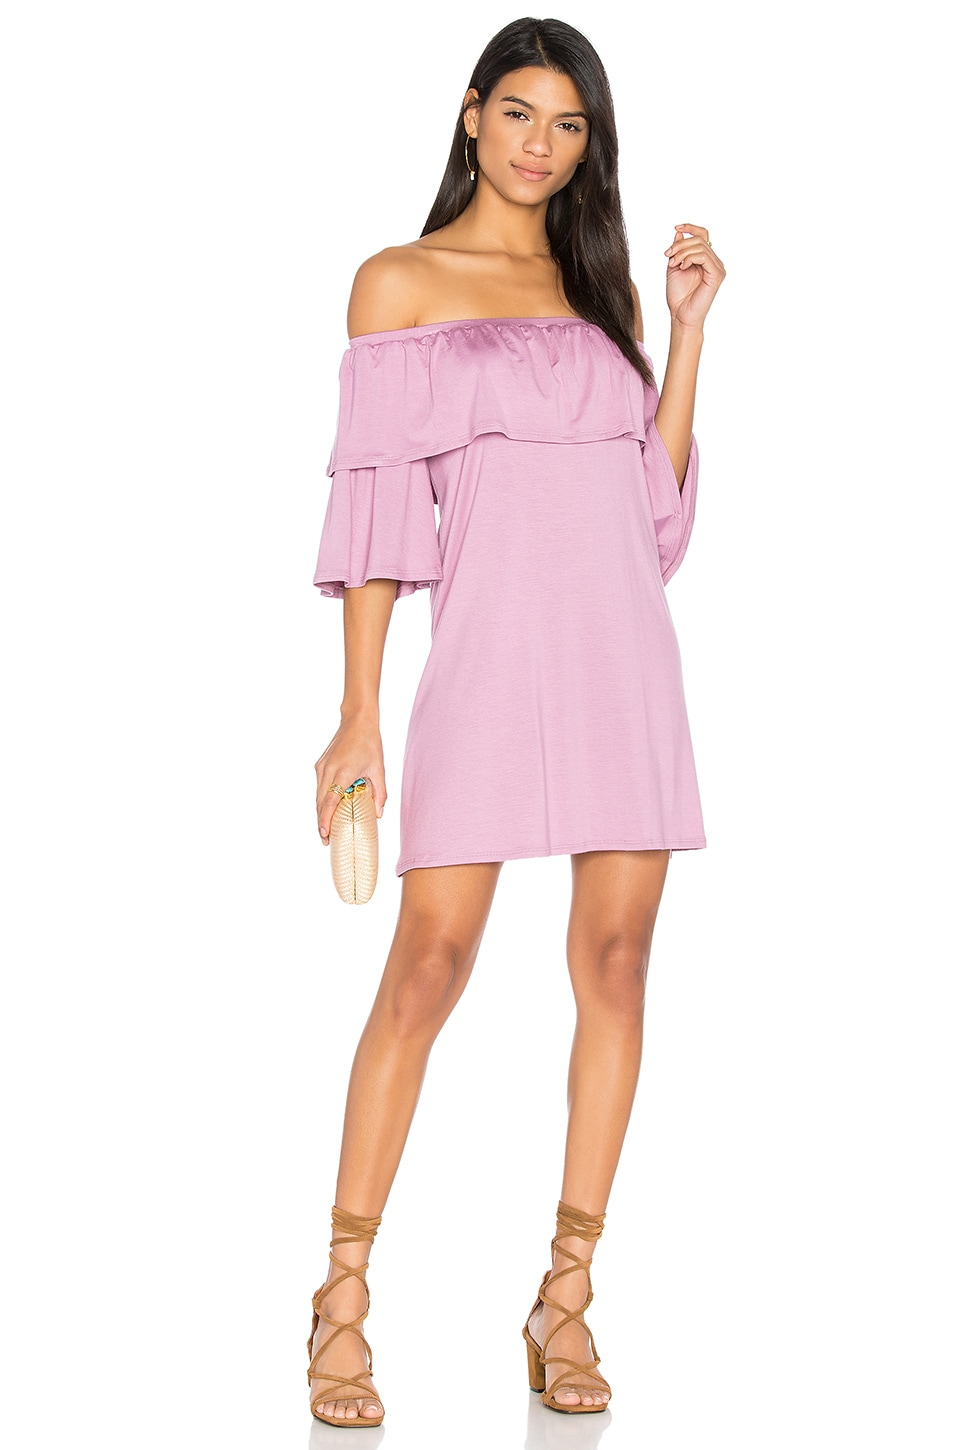 Rachel Pally Kylian Dress in Violeta